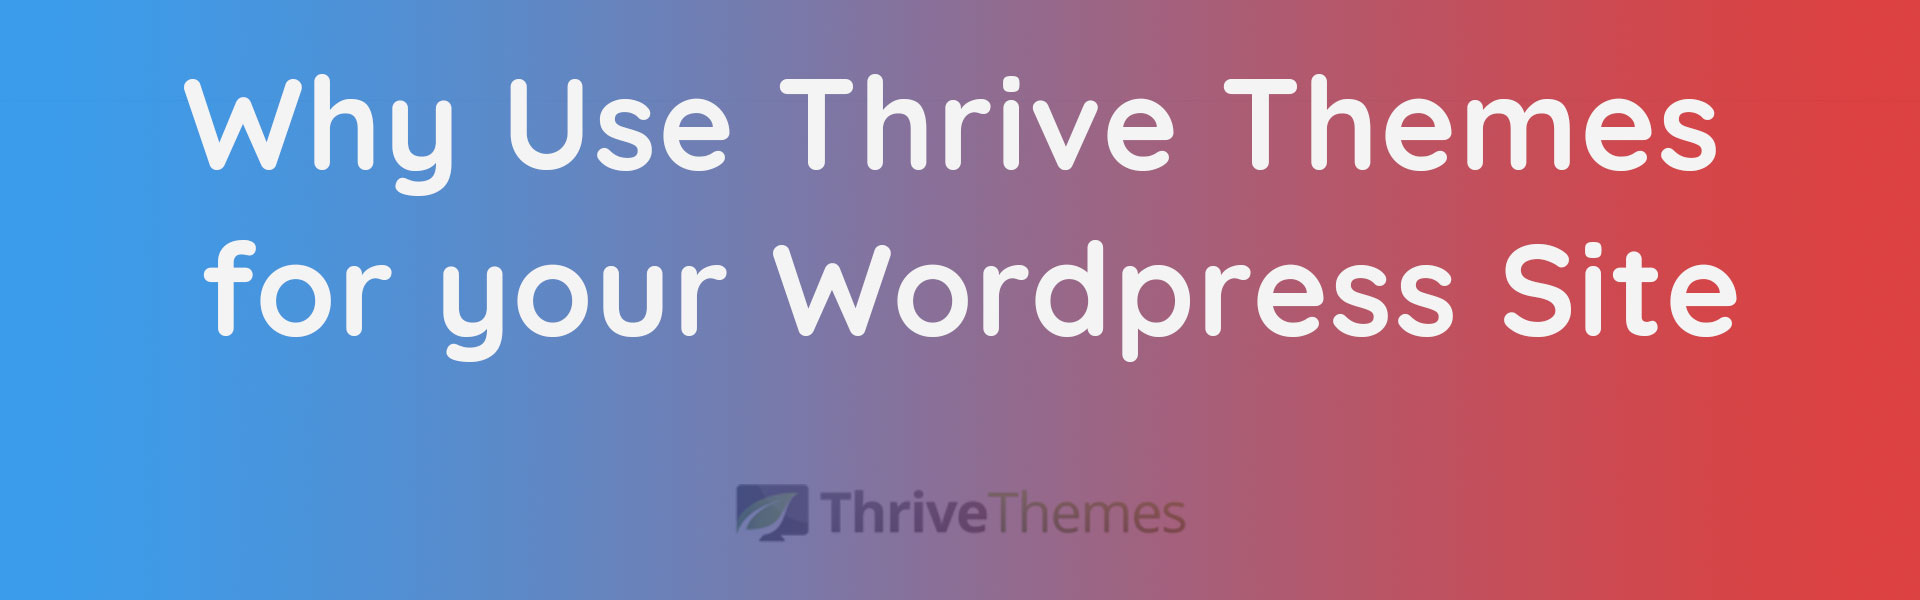 Warranty Support WordPress Themes  Thrive Themes